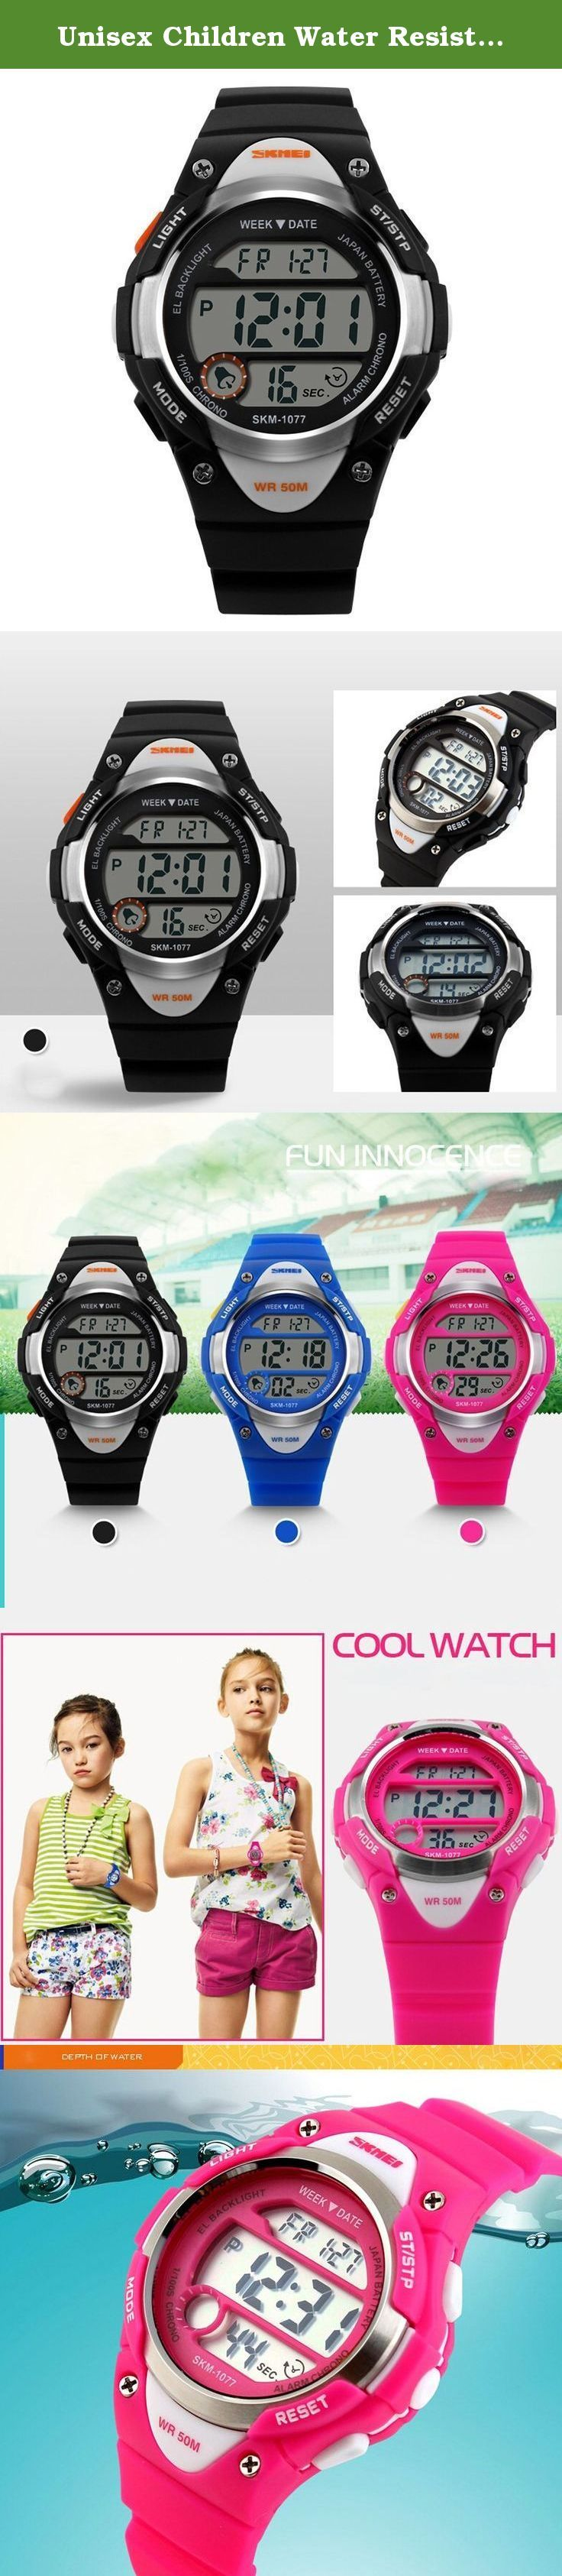 Unisex Children Water Resistant Watch Multifunction LED Watch Student Boy Girl Sports Wristwatch- Black. A variety of styles you can choose in our store ! Package Included: 1 x Watch Please Note: 1. Actual color may vary from picture due to computer settings. 2. Find store front of Sunny world, more surprises are waiting for you! Dear Buyer, Thanks for your continuous support to our store, and we are always striving to improve ourselves in terms of service, quality, sourcing, etc. It…